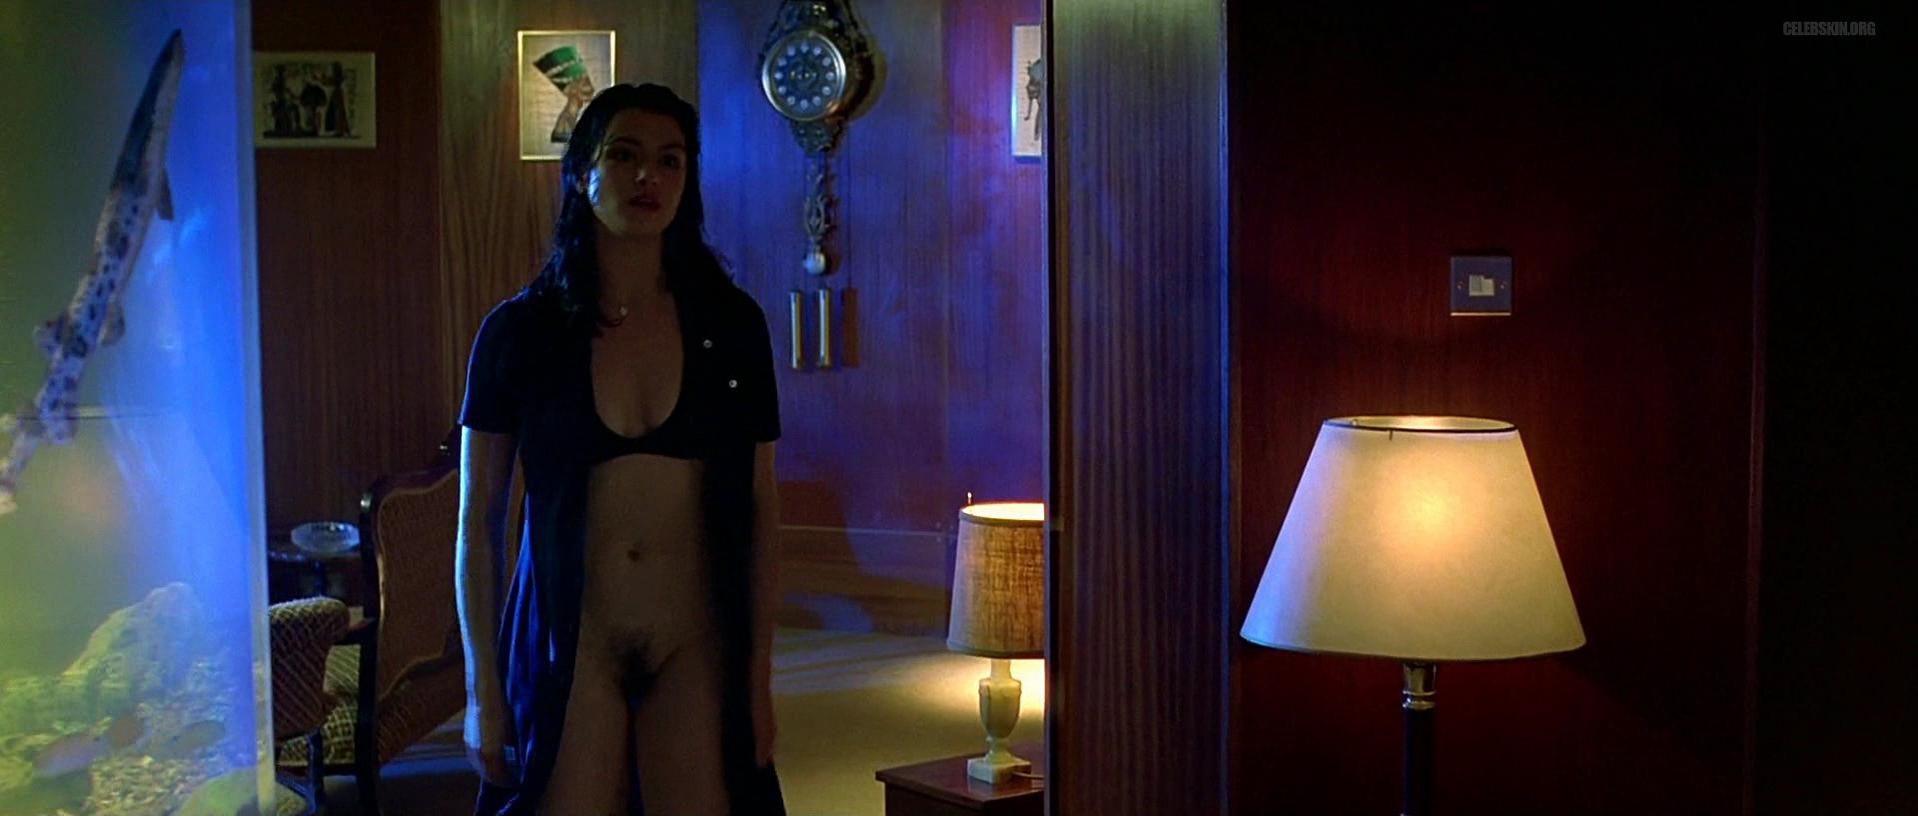 Rachel Weisz nude - I Want You (1998)